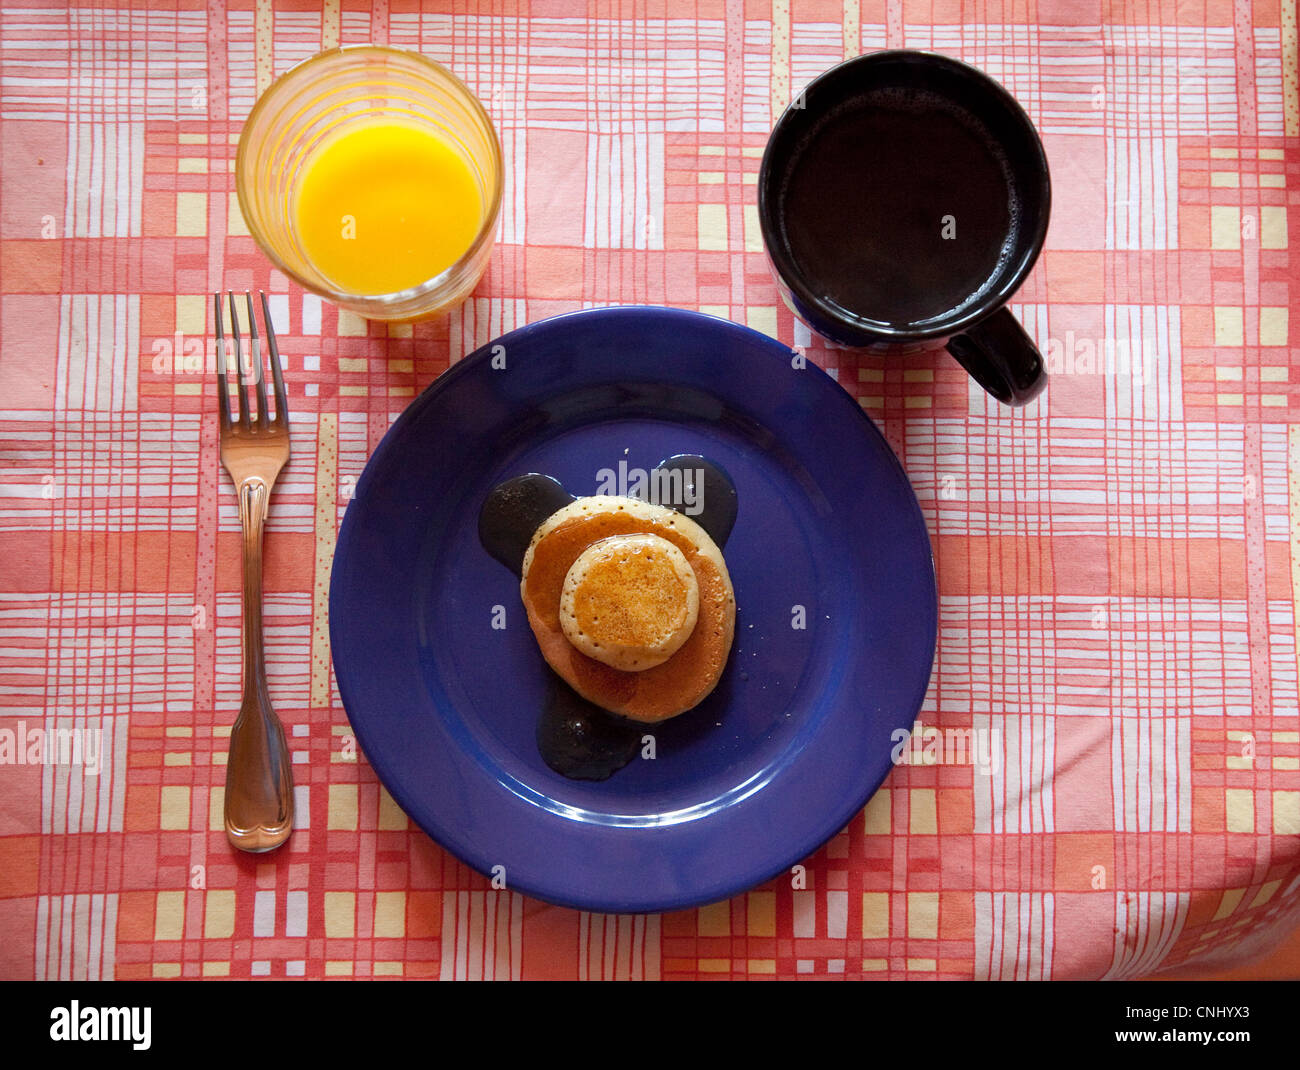 A colour image of a breakfast setting Pancakes, tea and orange juice. - Stock Image